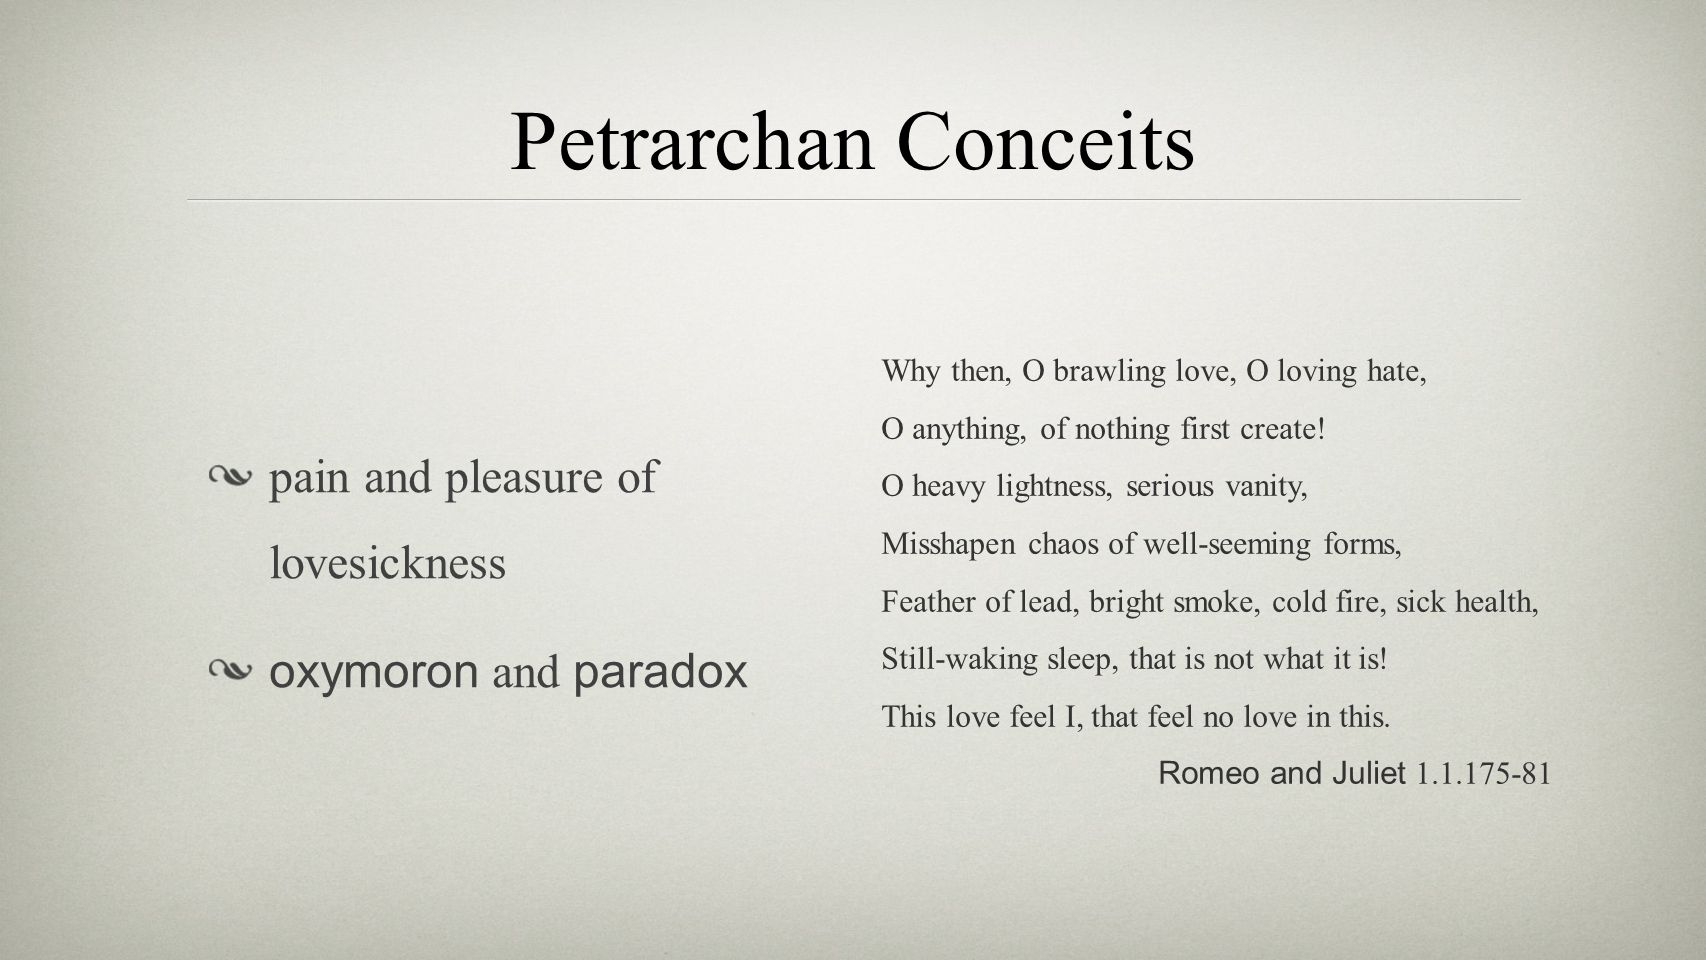 Petrarchan Conceits pain and pleasure of lovesickness oxymoron and paradox Why then, O brawling love, O loving hate, O anything, of nothing first create.